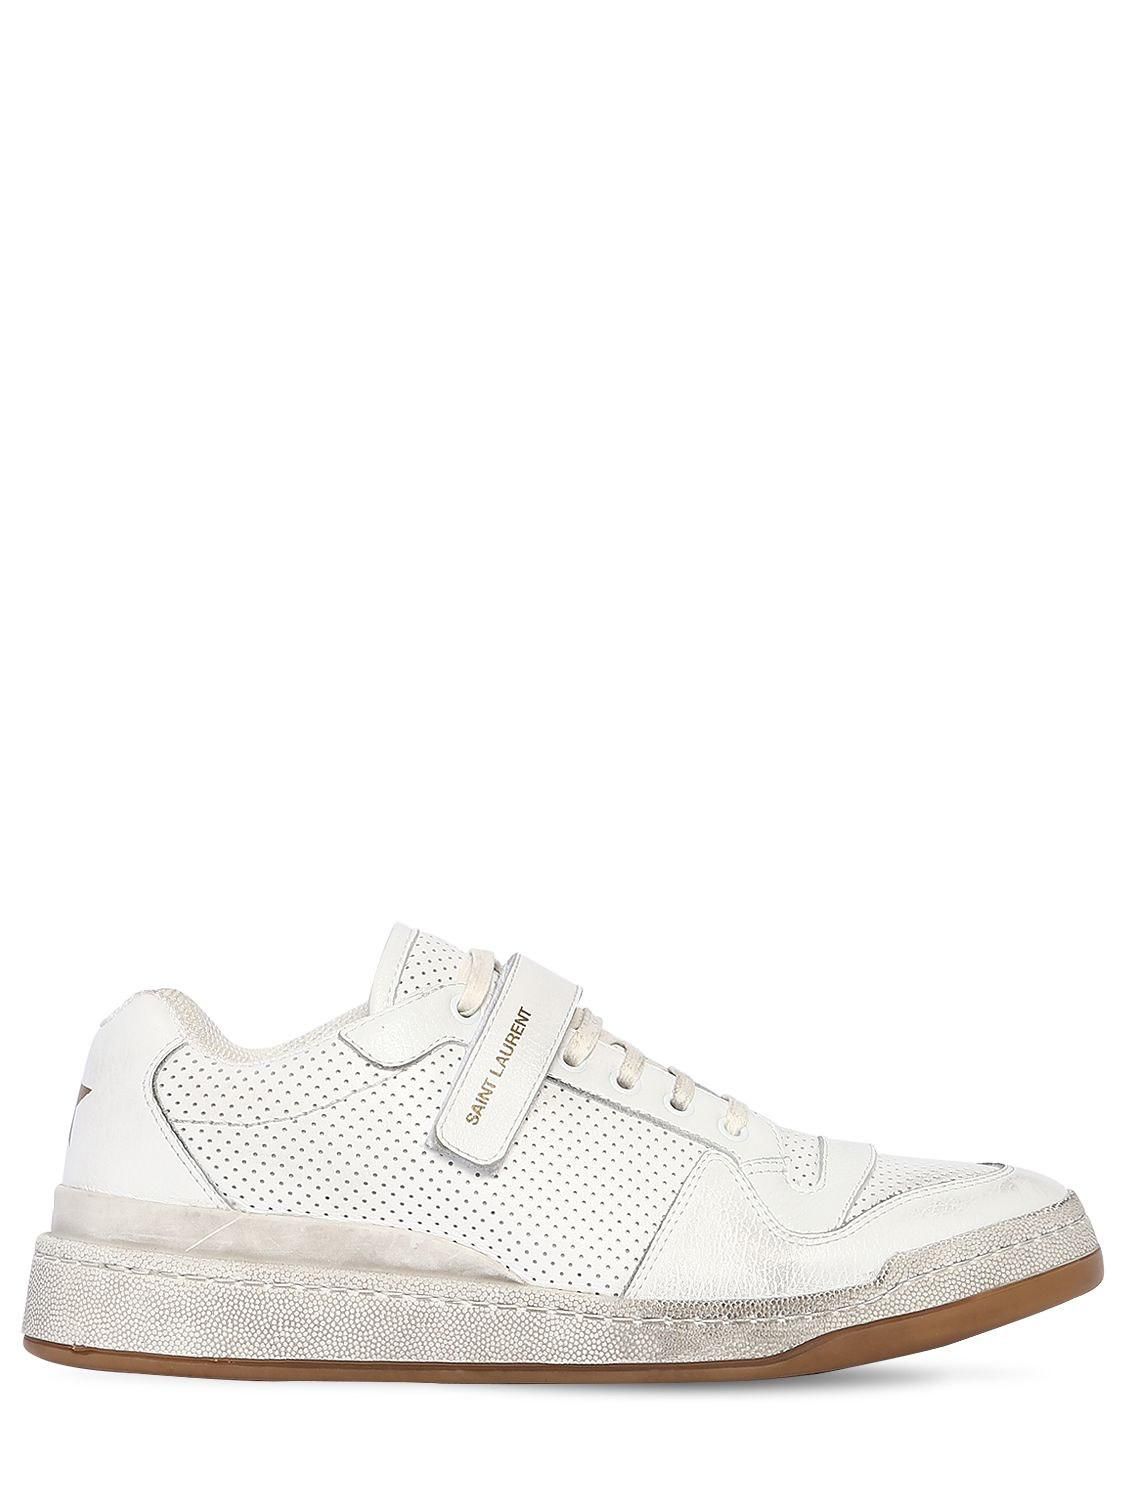 19c75f2d5baa93 ... White Travis Perforated Leather Sneakers for Men - Lyst. View fullscreen